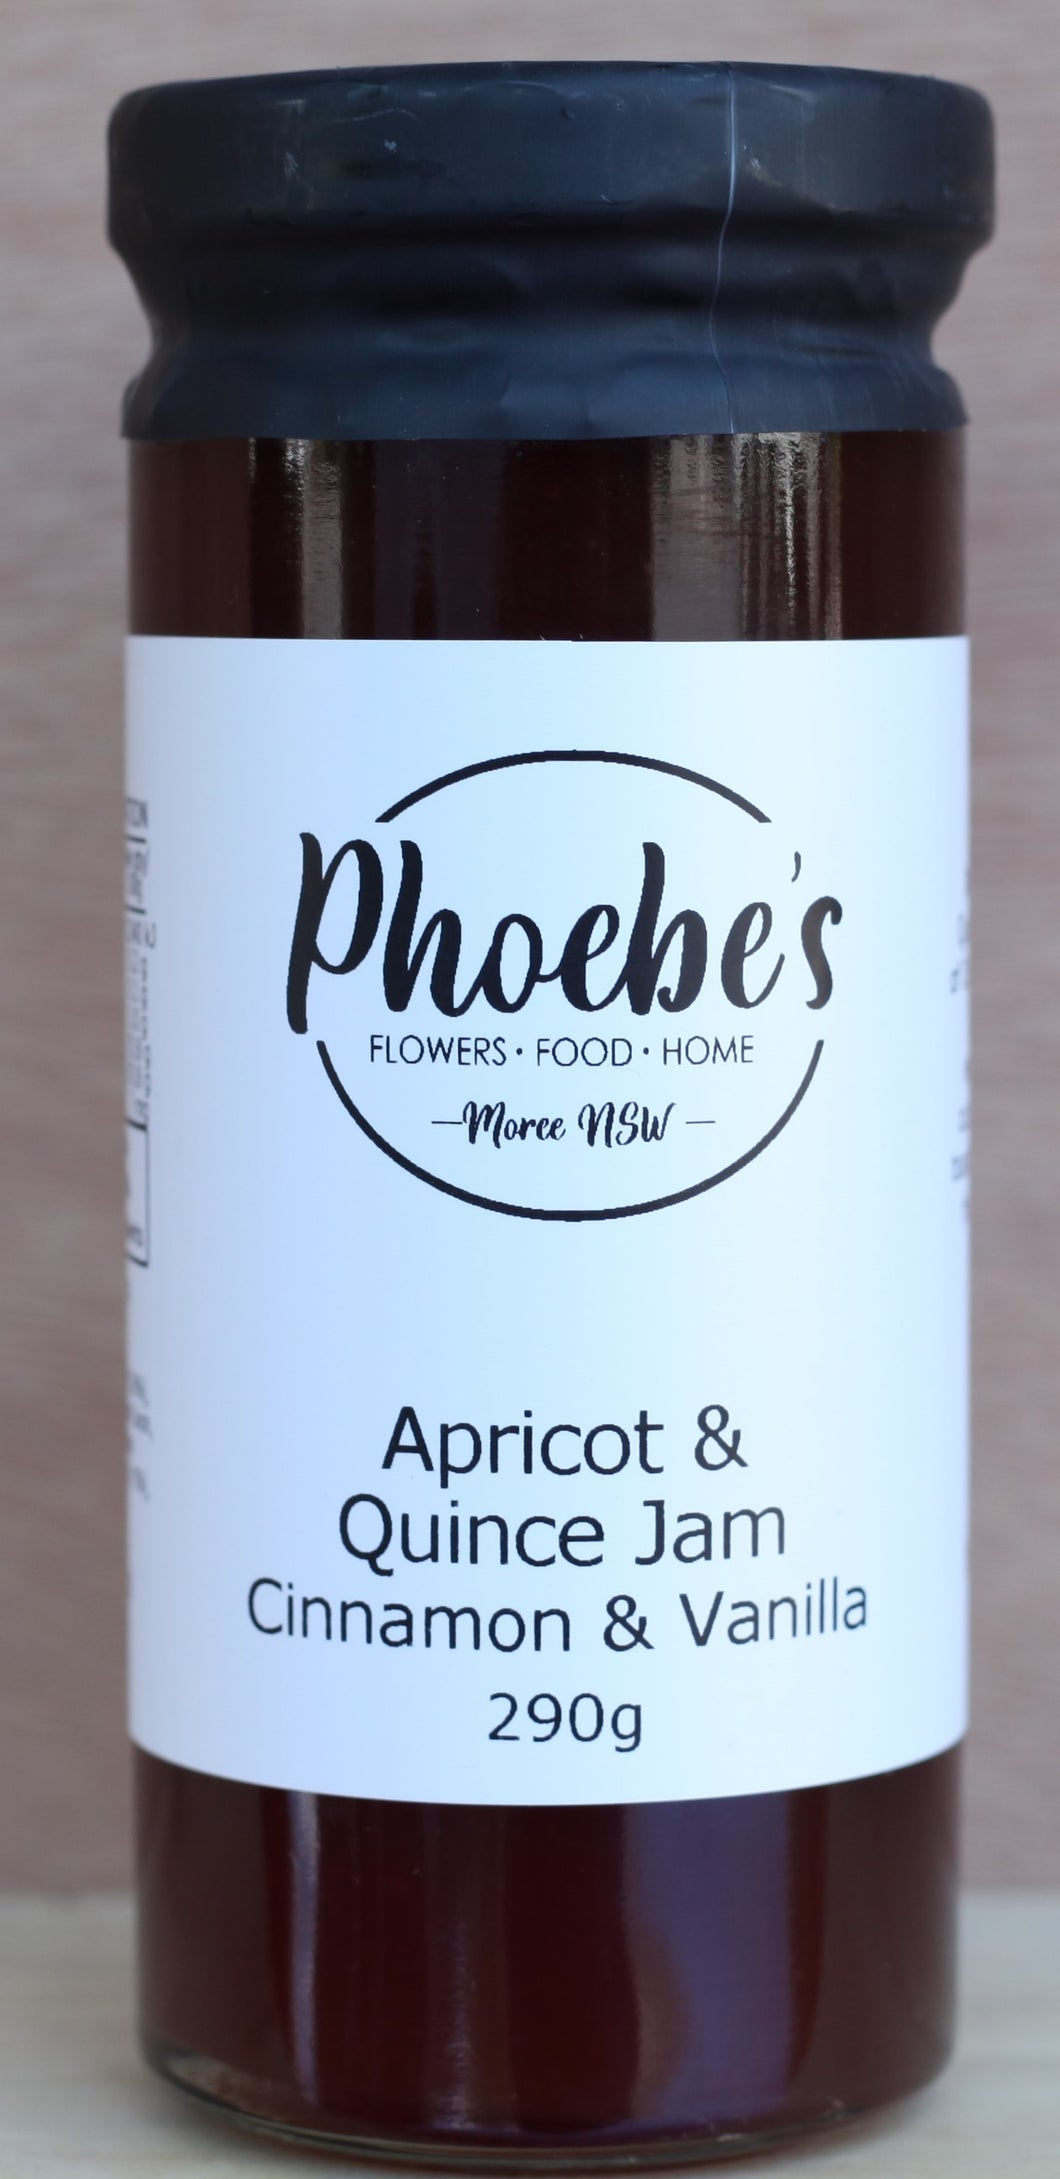 Phoebe's Apricot and Quince Jam with Cinnamon & Vanilla